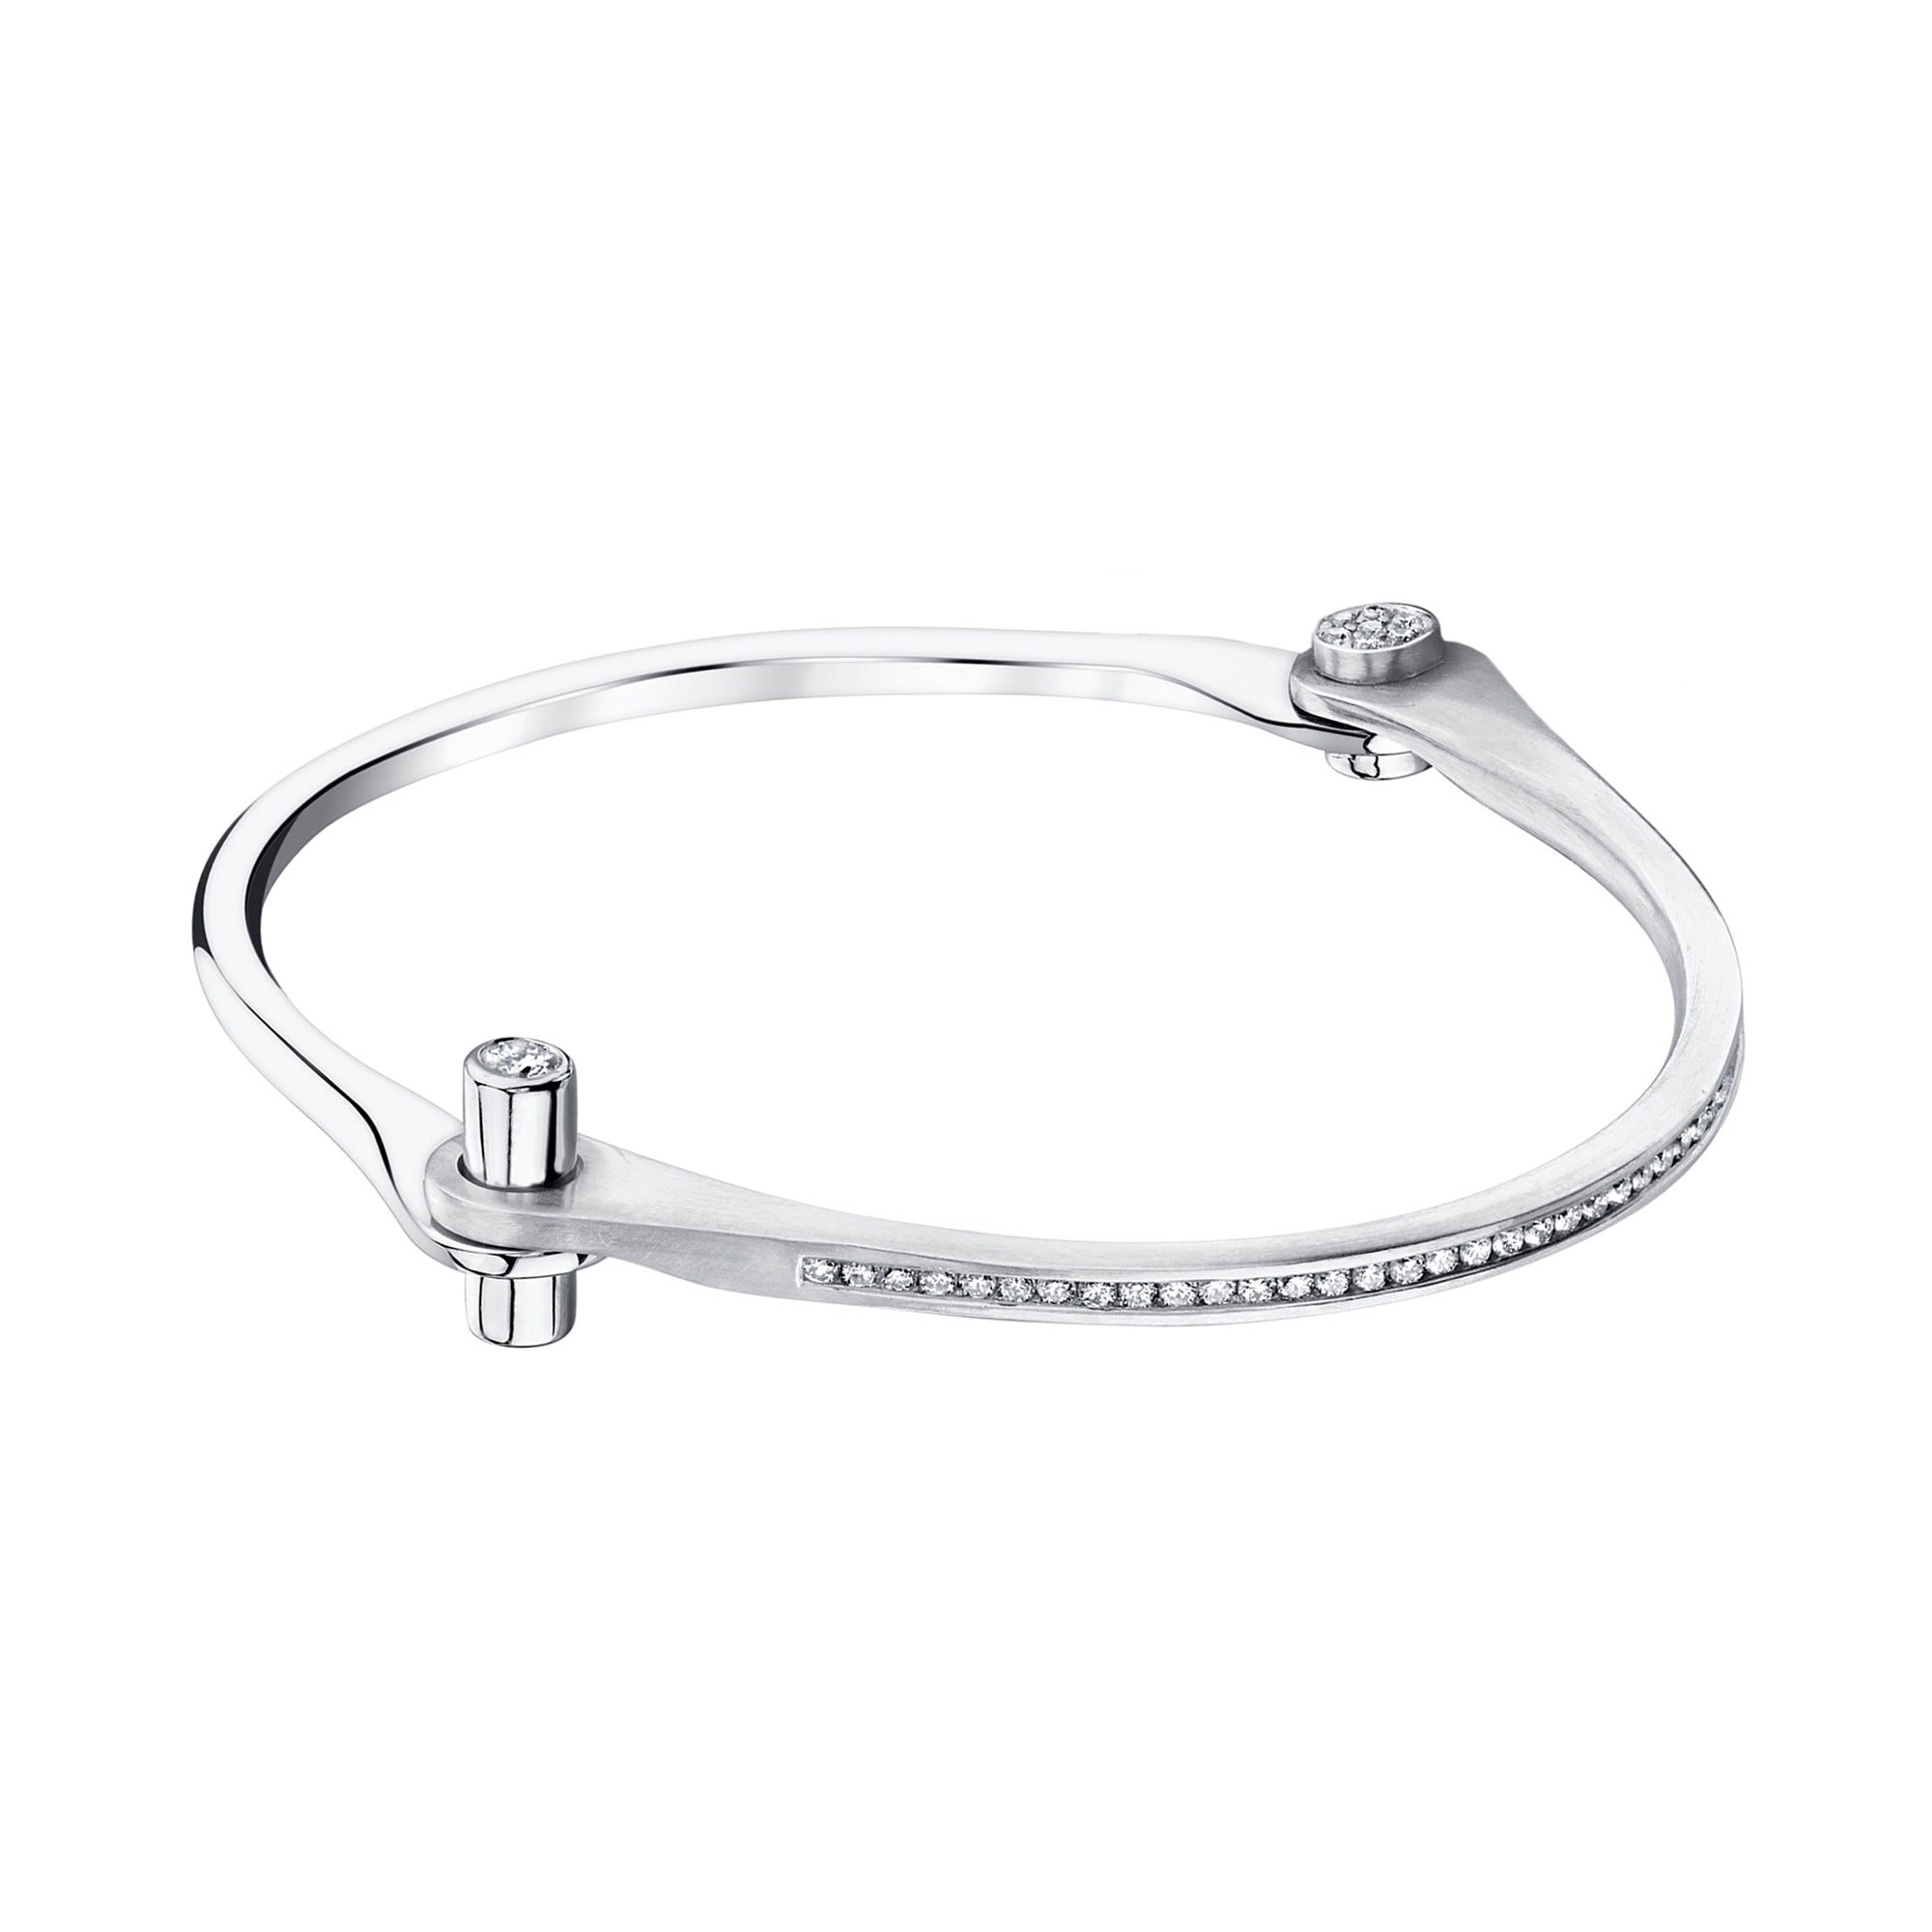 Pave Diamond Skinny Handcuff by Borgioni for Broken English Jewelry